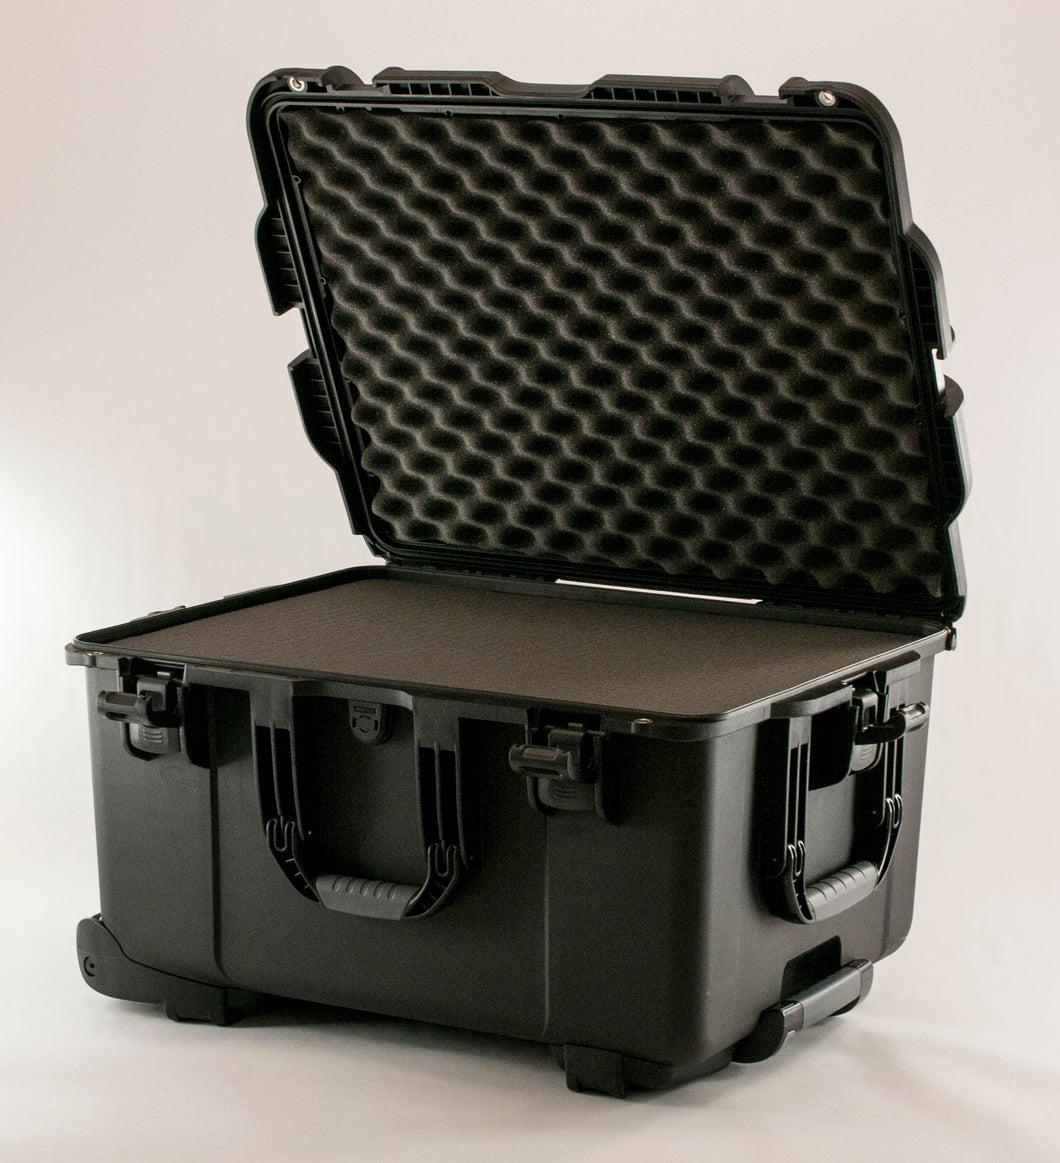 Turtle Case Glass-760 Wheeled Hard Shell Pipe Case (22x17x12.9)